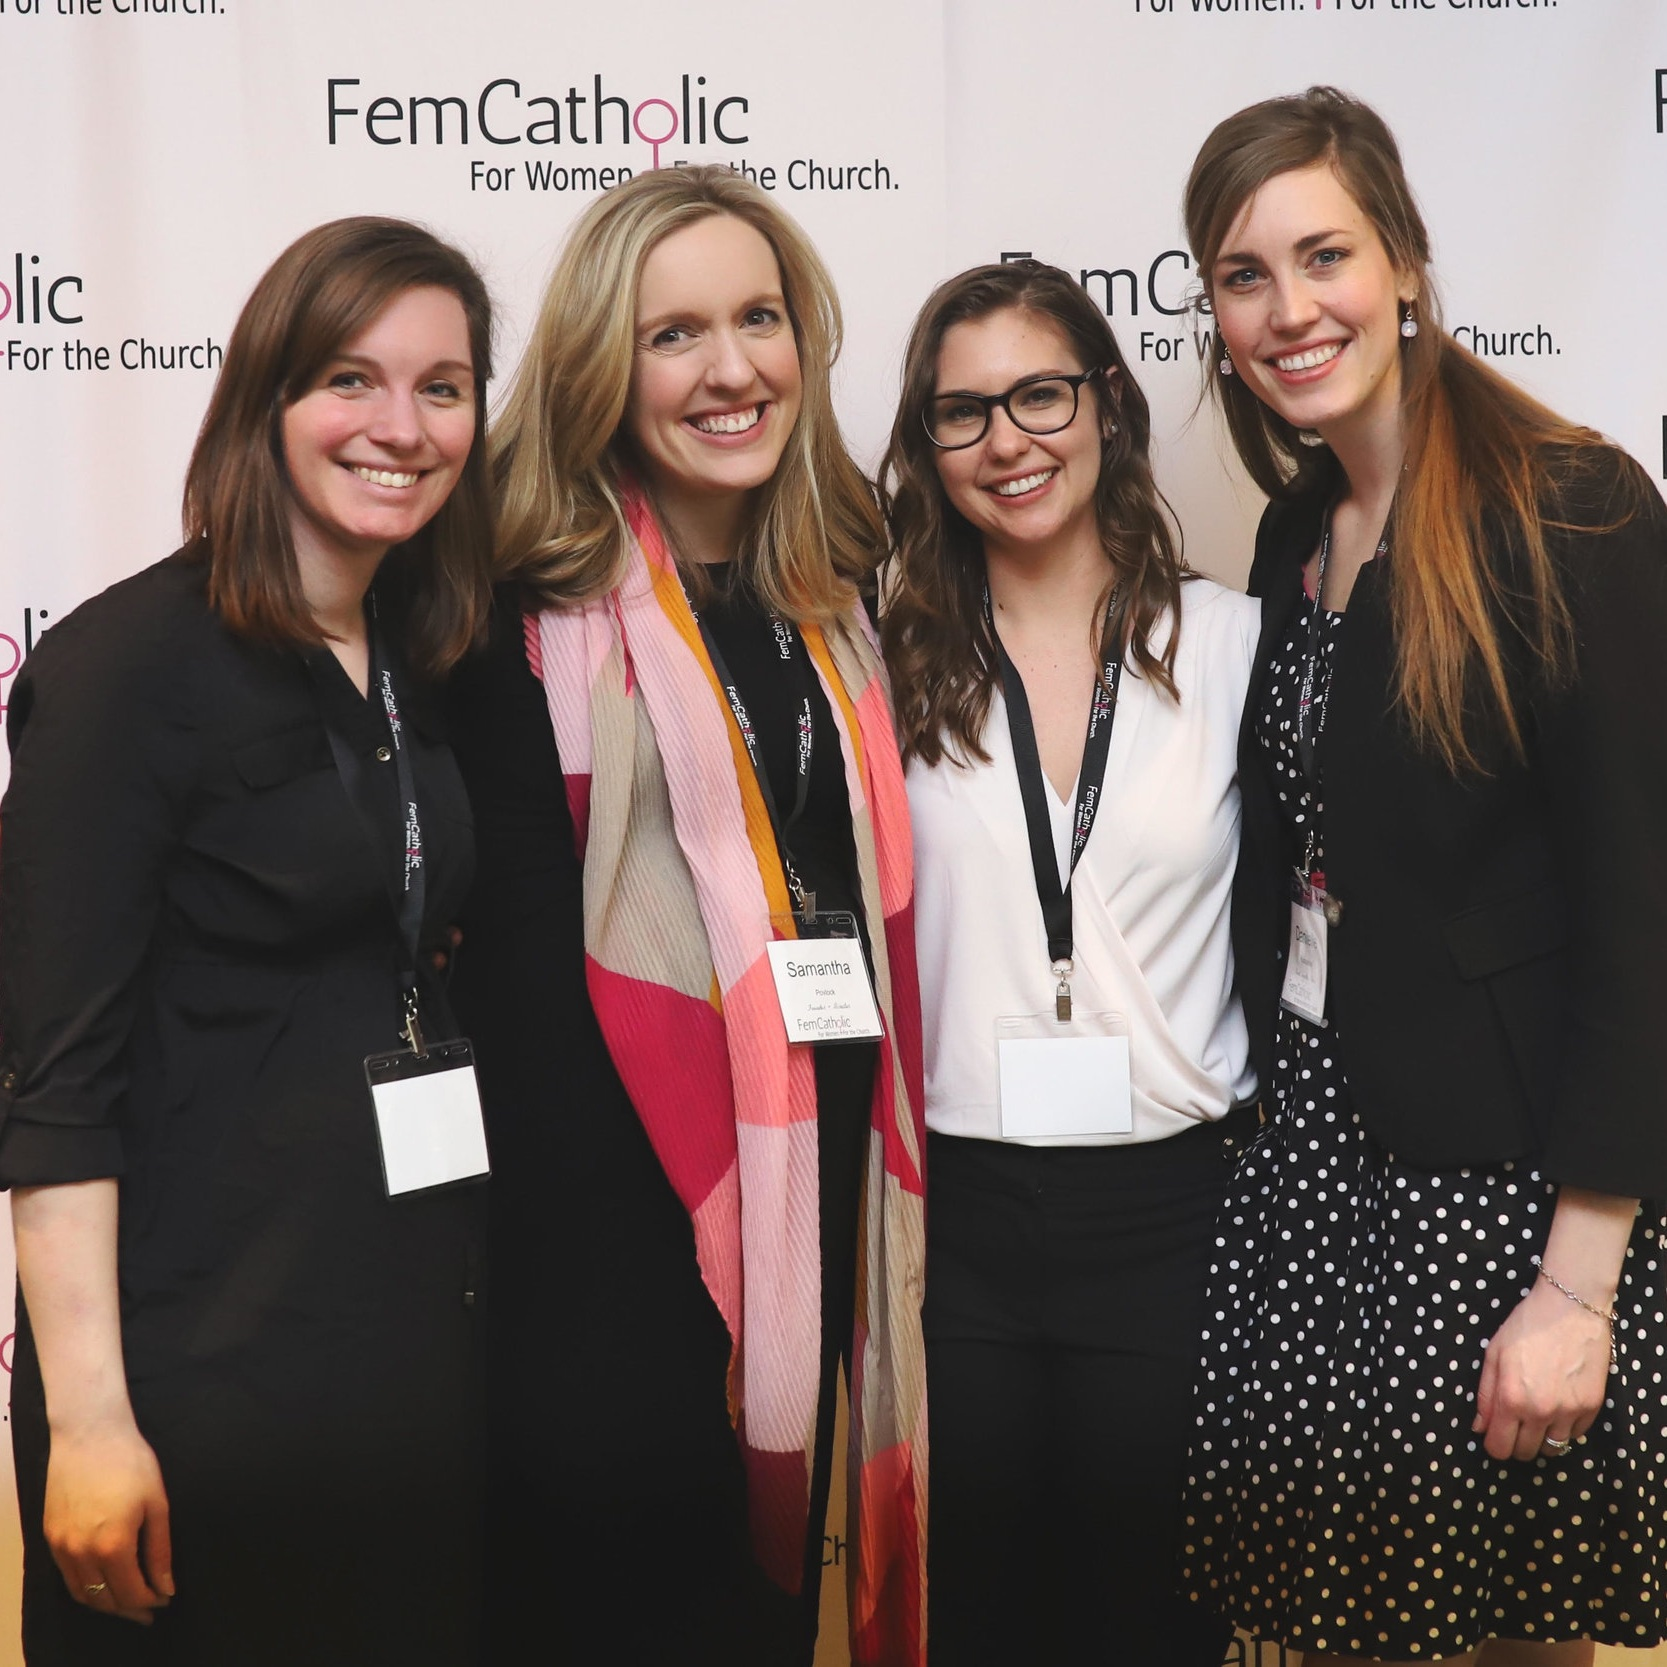 About Samantha - Samantha Povlock is the founder of FemCatholic, a platform working to reconcile feminism and Catholicism that hosted their first conference in March 2019. Sam is a corporate working mom of two, a Notre Dame grad, and transplant to Chicago.Read Samantha's letter on Catholic Feminism here.